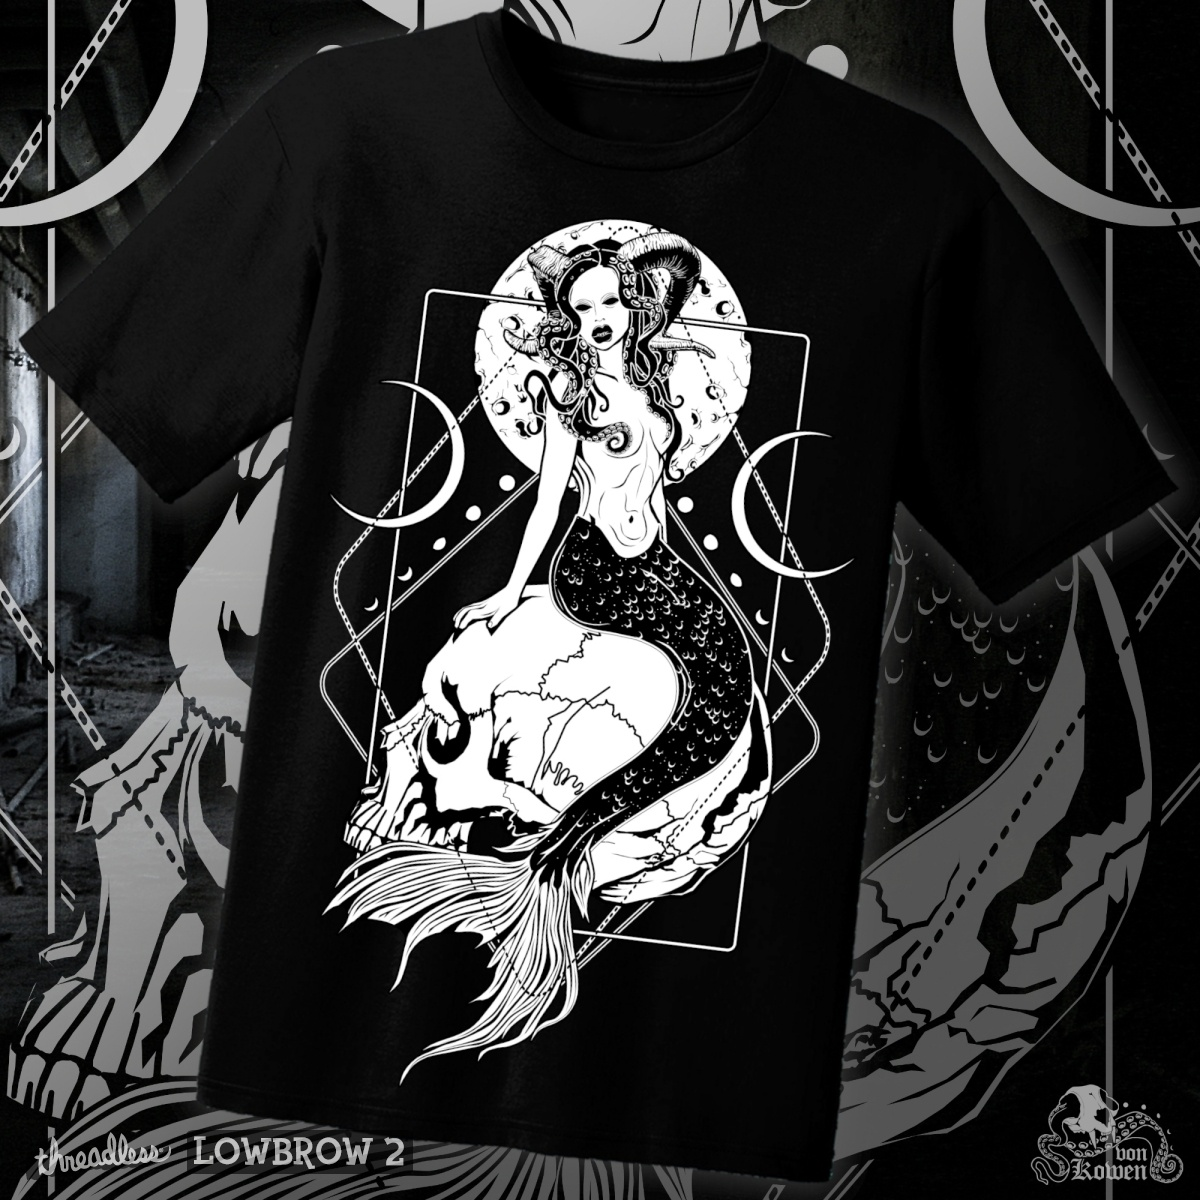 Creepy mermaid, a cool t-shirt design